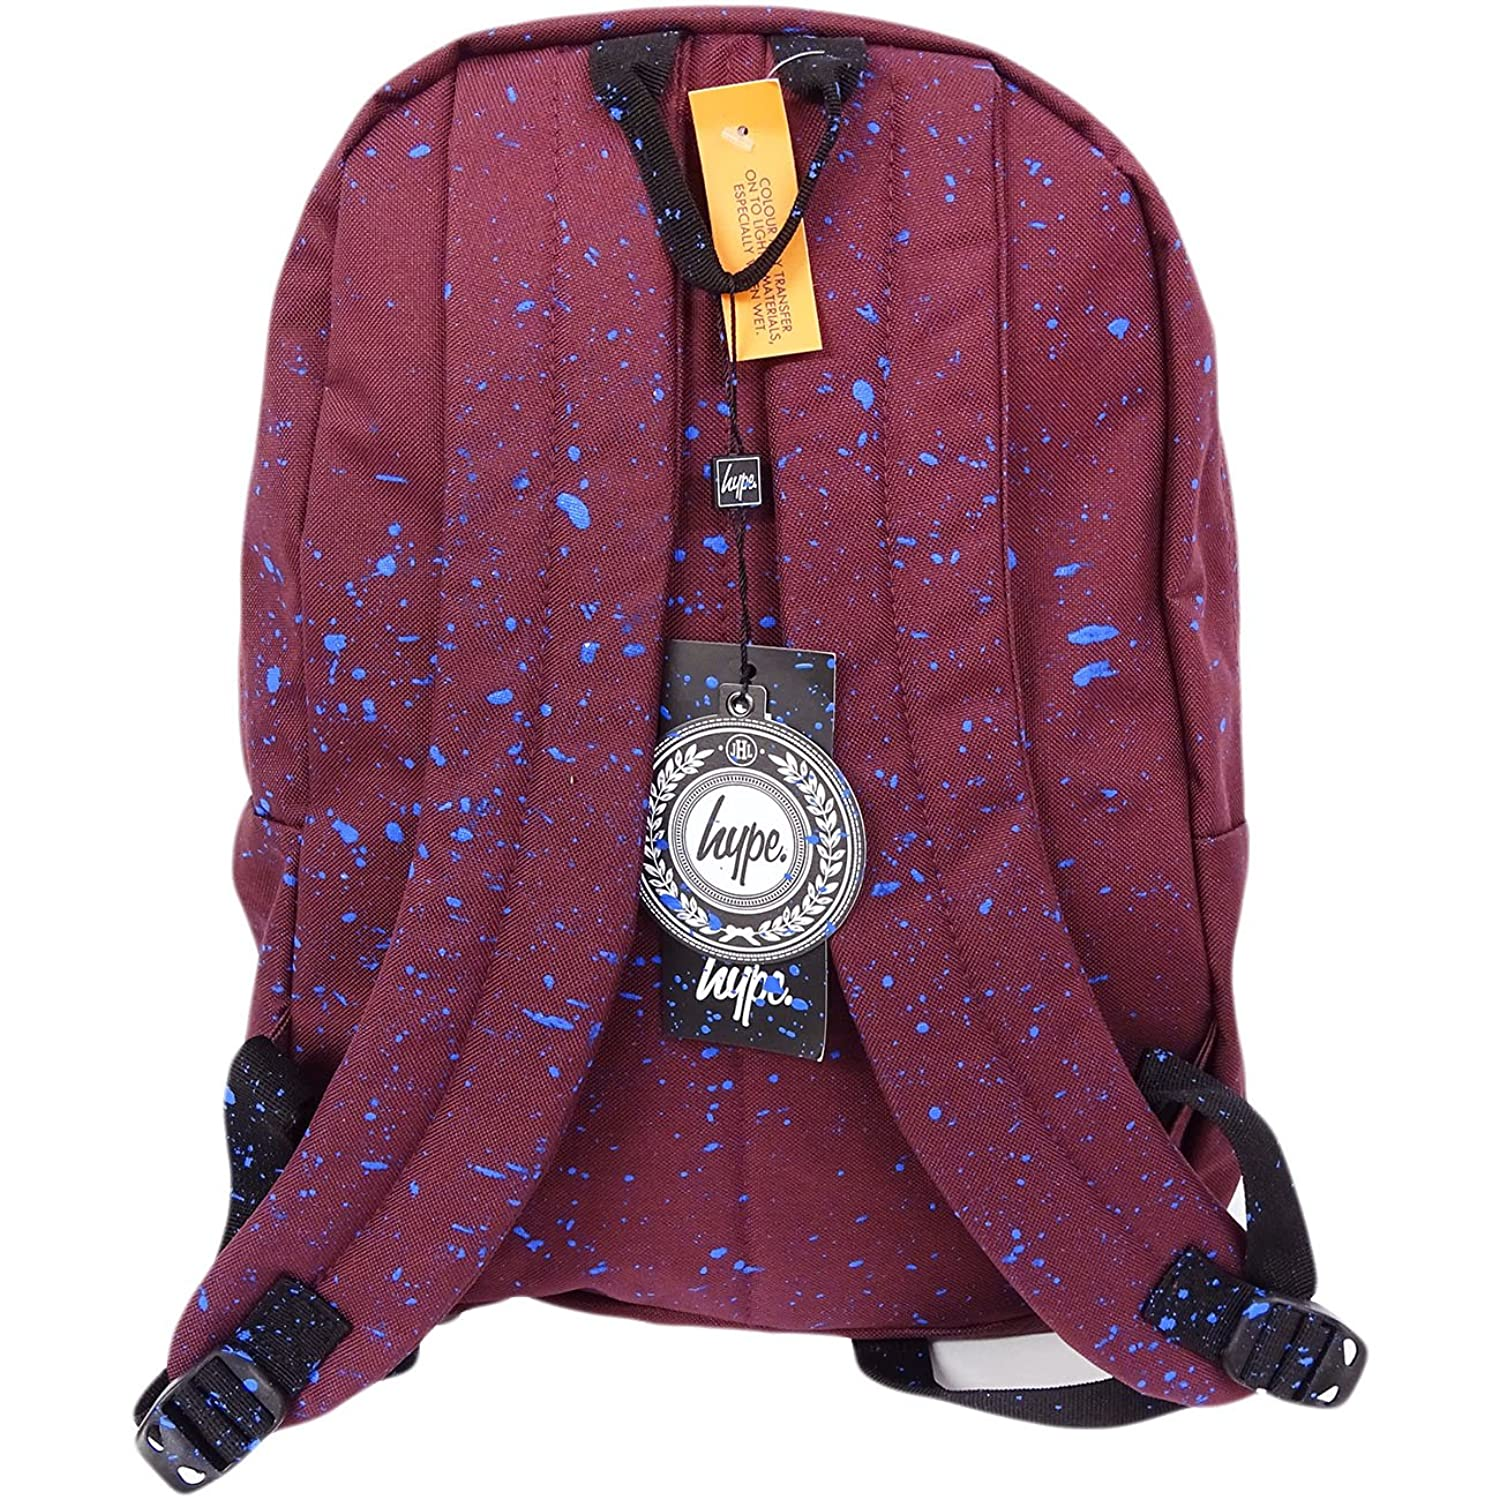 Just Hype Backpack Bag Burgundy and Blue Speckled Burgundy / Blue: Amazon.co.uk: Clothing